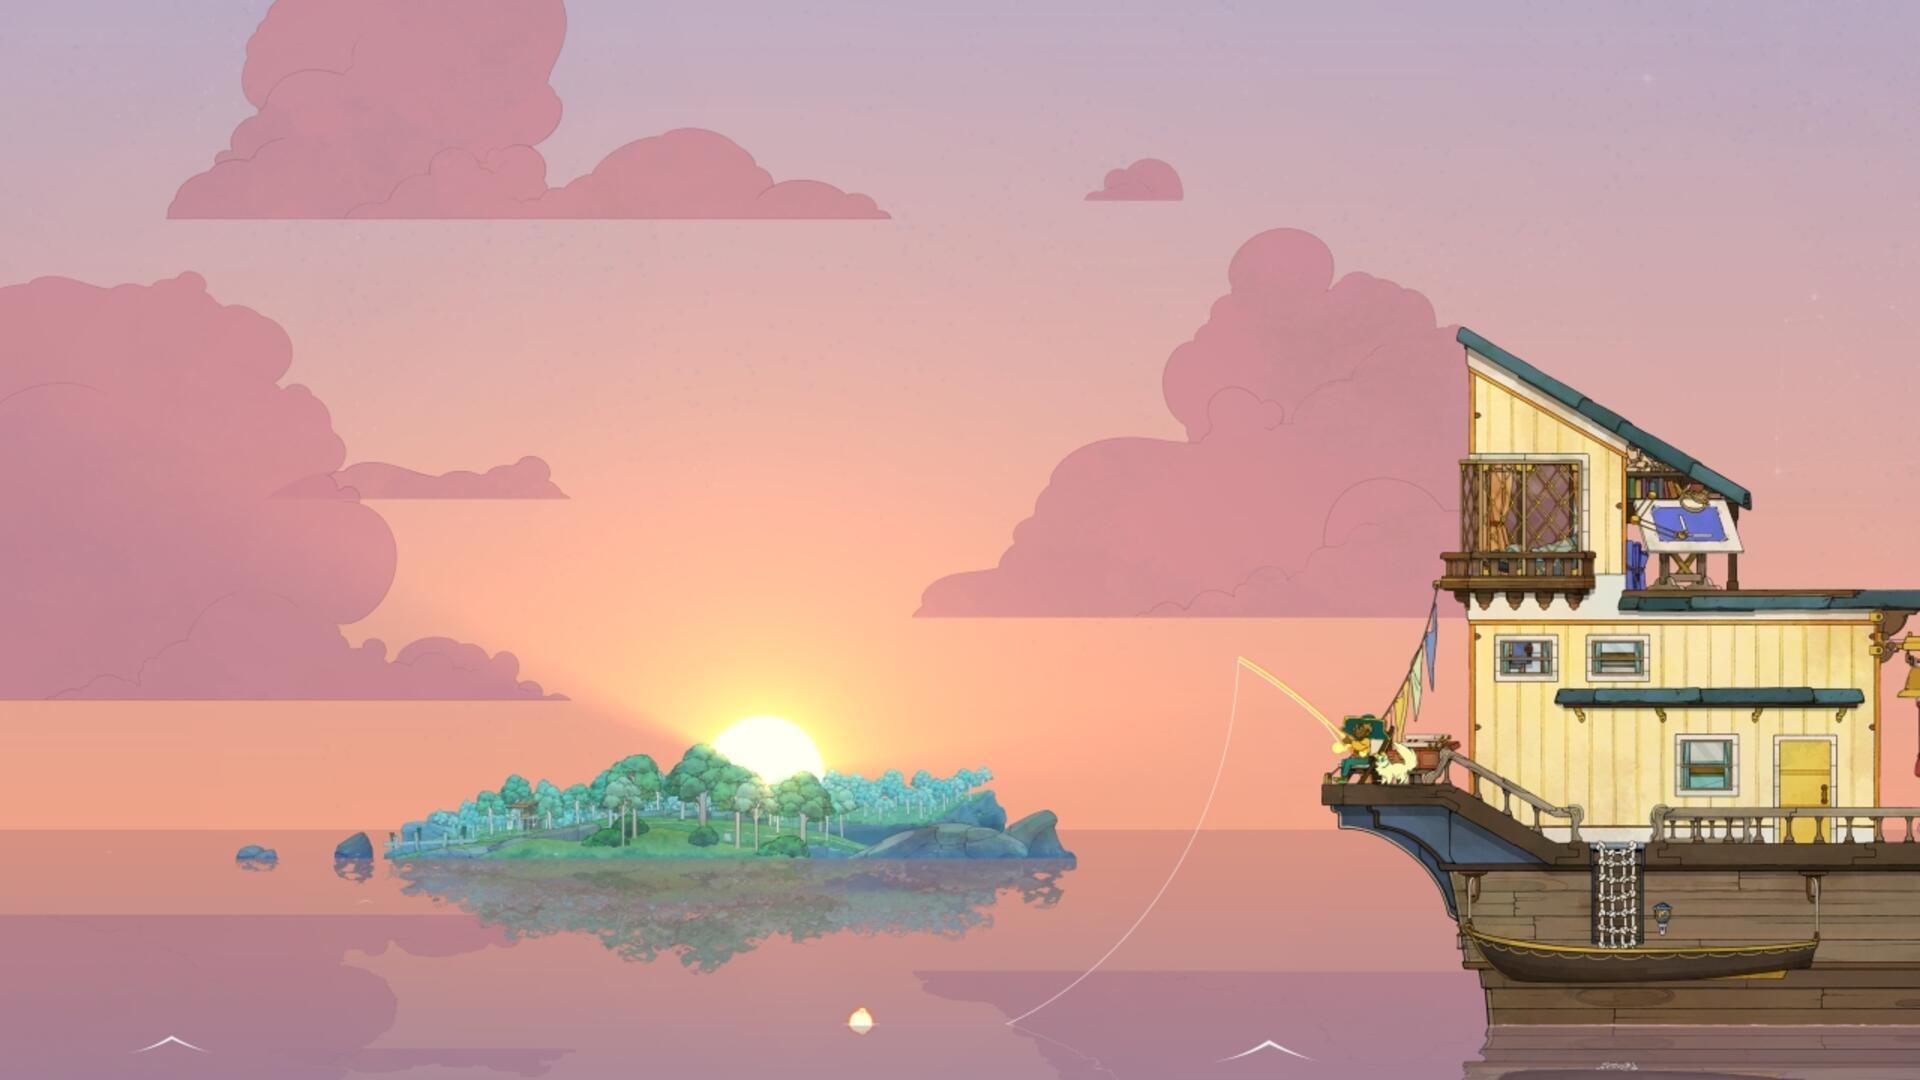 Spiritfarer's Art Director on Encouraging Relaxation, Exploration, and Just Chilling on a Boat